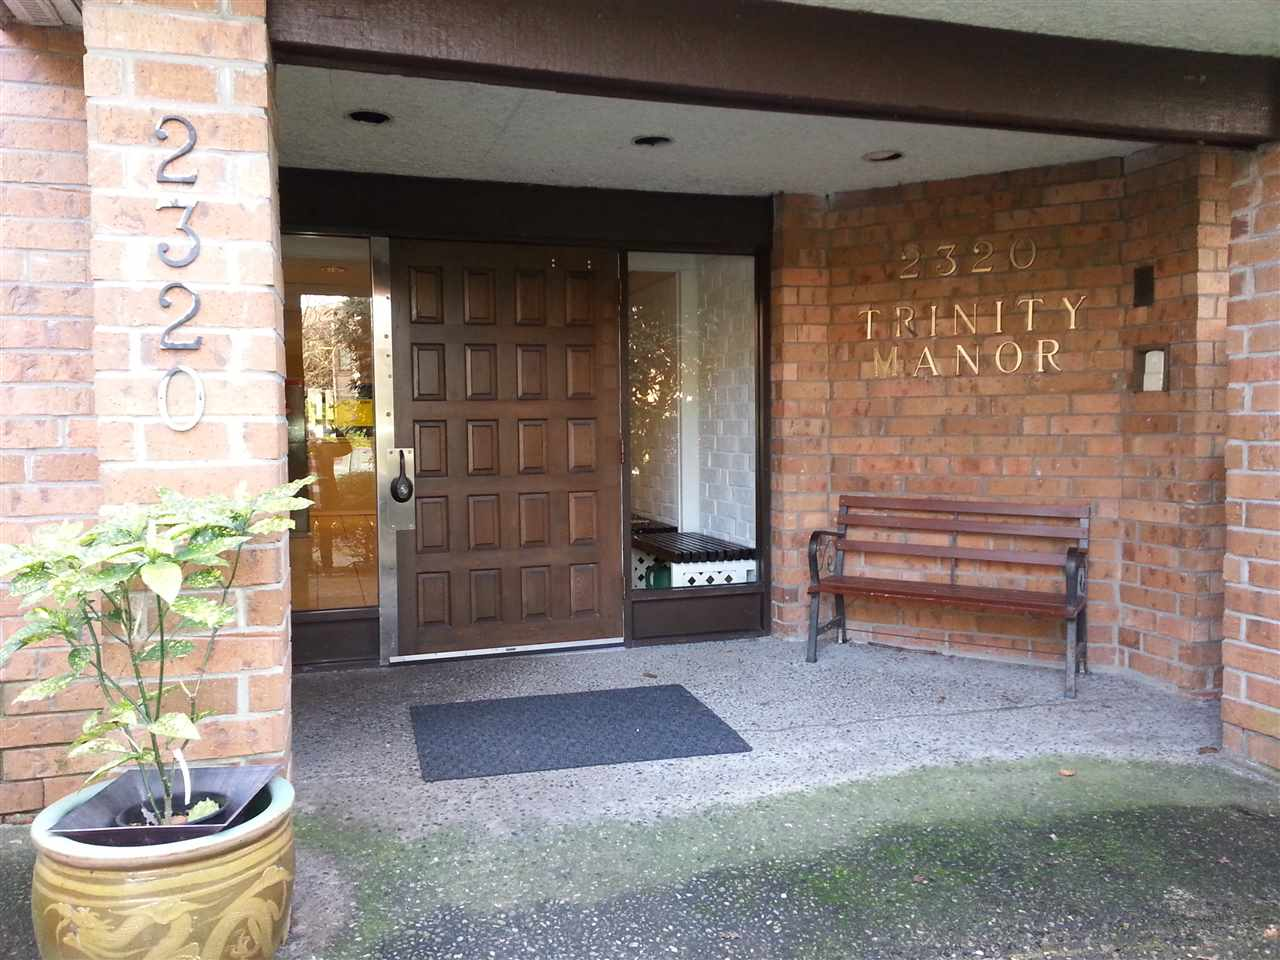 Main Photo: 304 2320 TRINITY Street in Vancouver: Hastings Condo for sale (Vancouver East)  : MLS(r) # R2037407